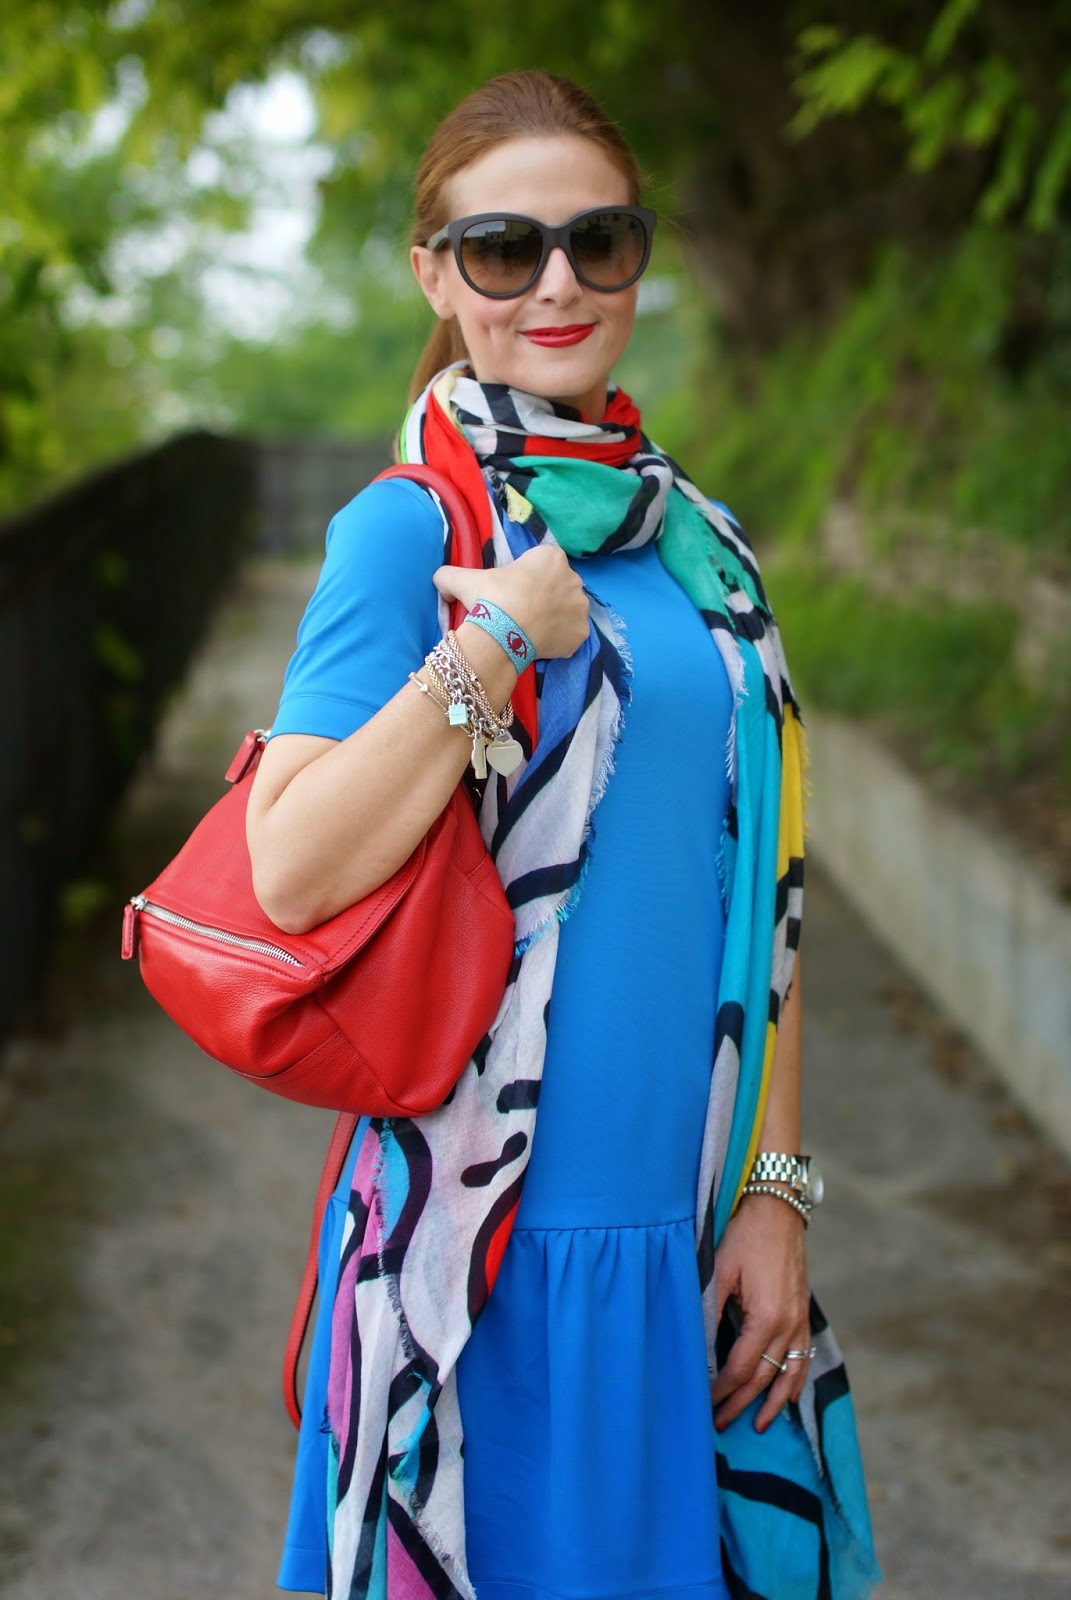 Givenchy Pandora red bag, Tessitura Lancioni scarf, Fashion and Cookies, fashion blogger